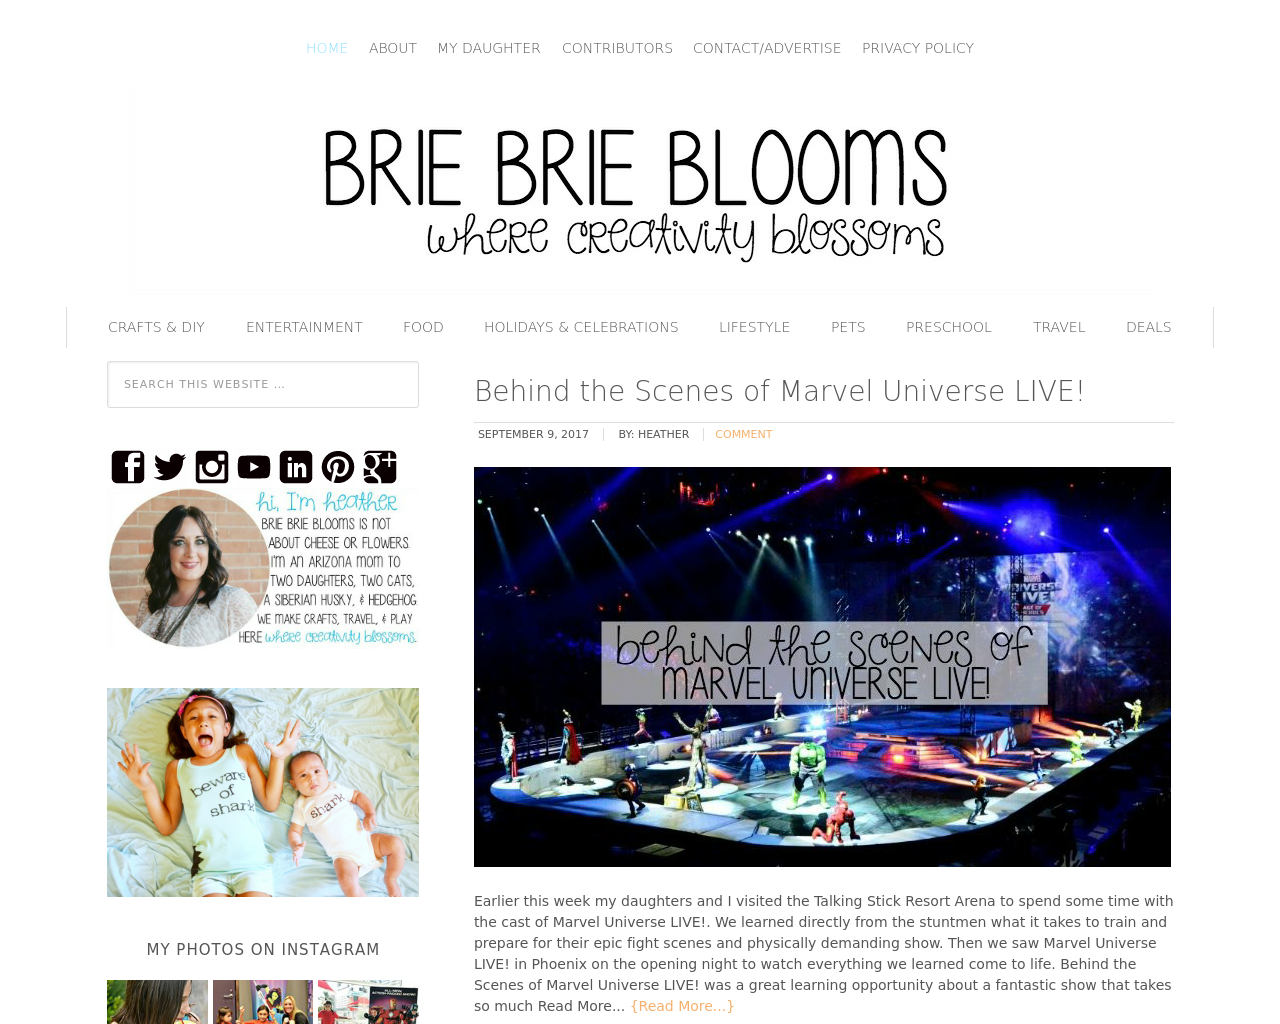 Brie-Brie-Blooms-Advertising-Reviews-Pricing